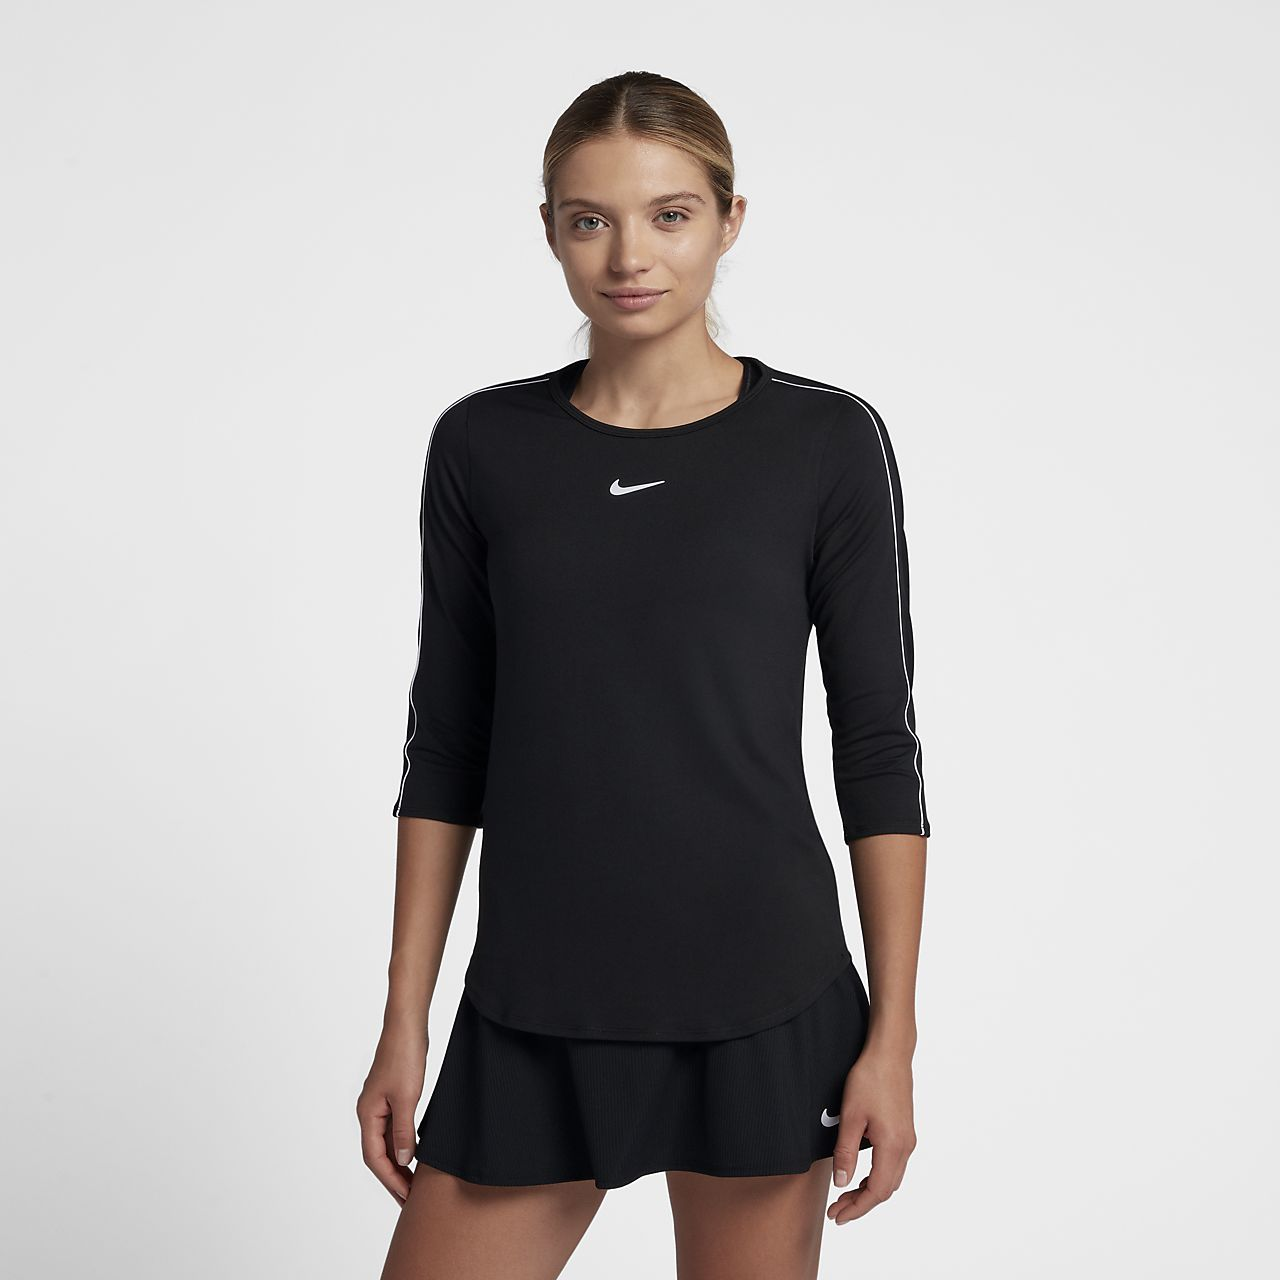 NikeCourt Women's 3/4-Sleeve Tennis Top